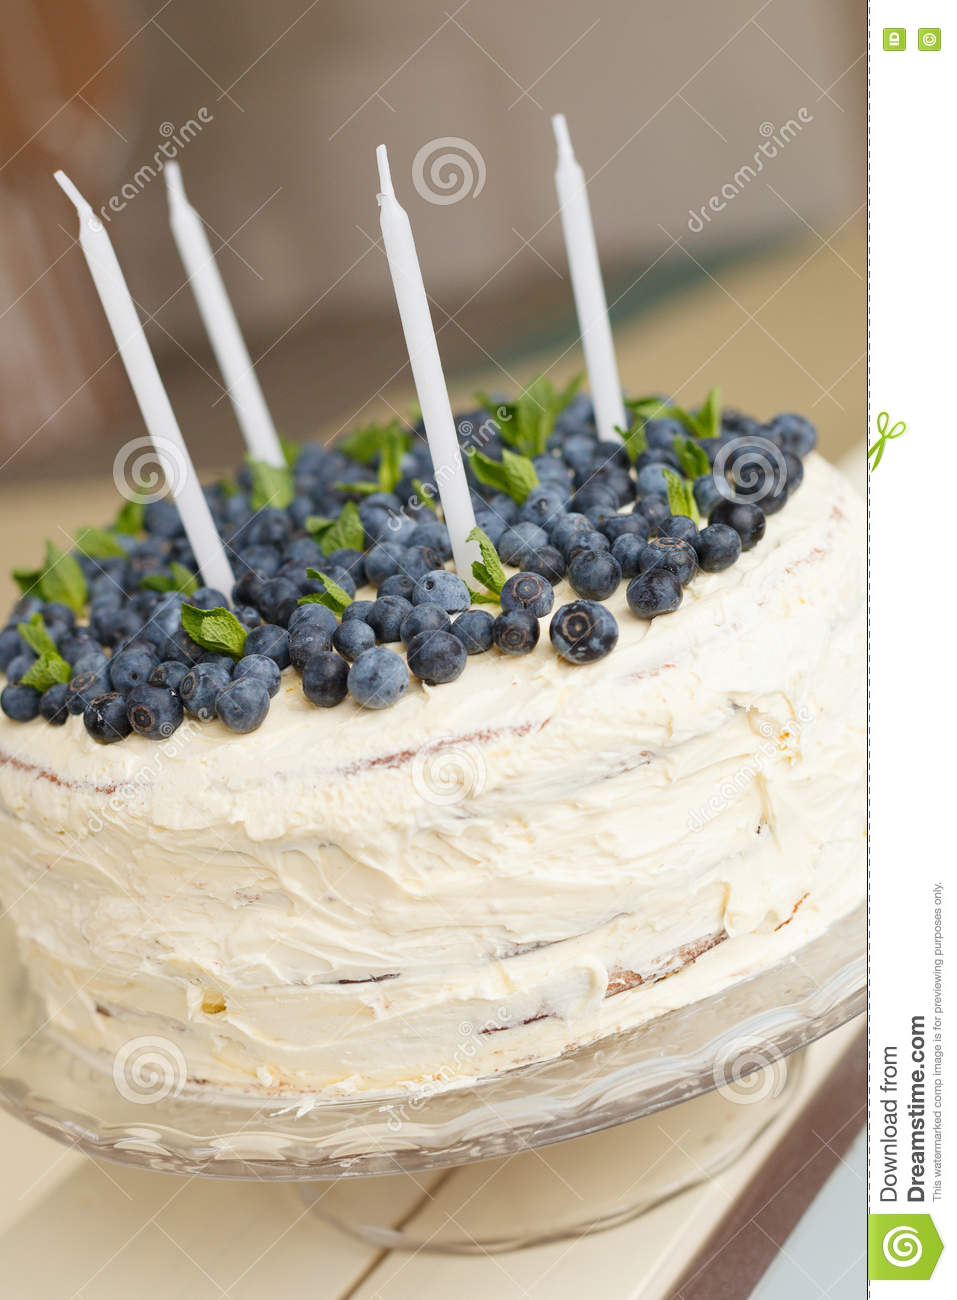 A Big White Birthday Cake With Fresh Organic Blueberries And Mint